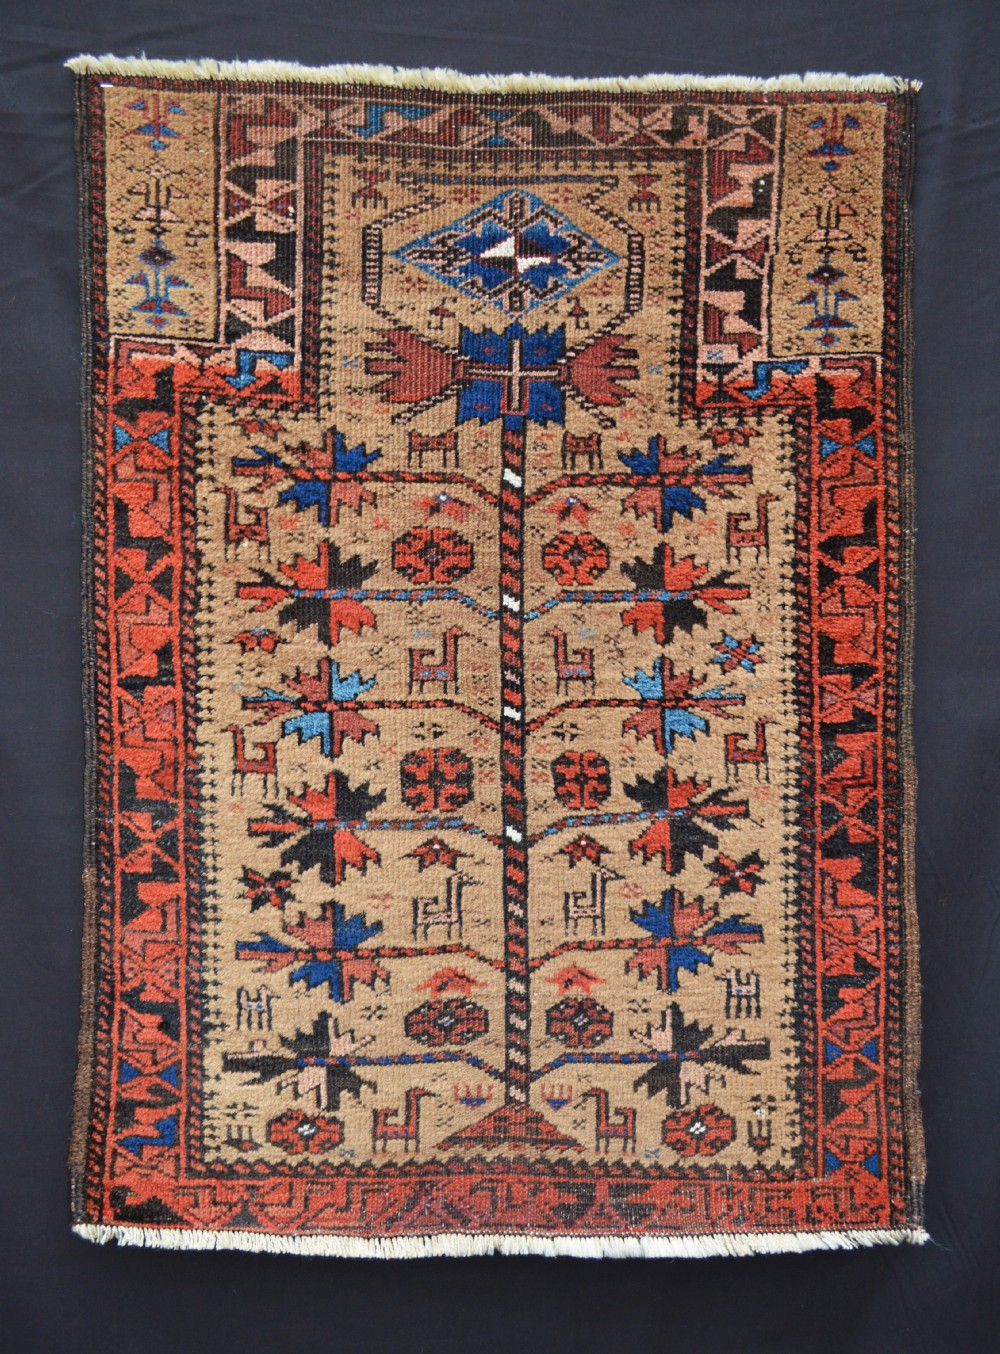 antique prayerrug baluch tribes persianafghan borderlands